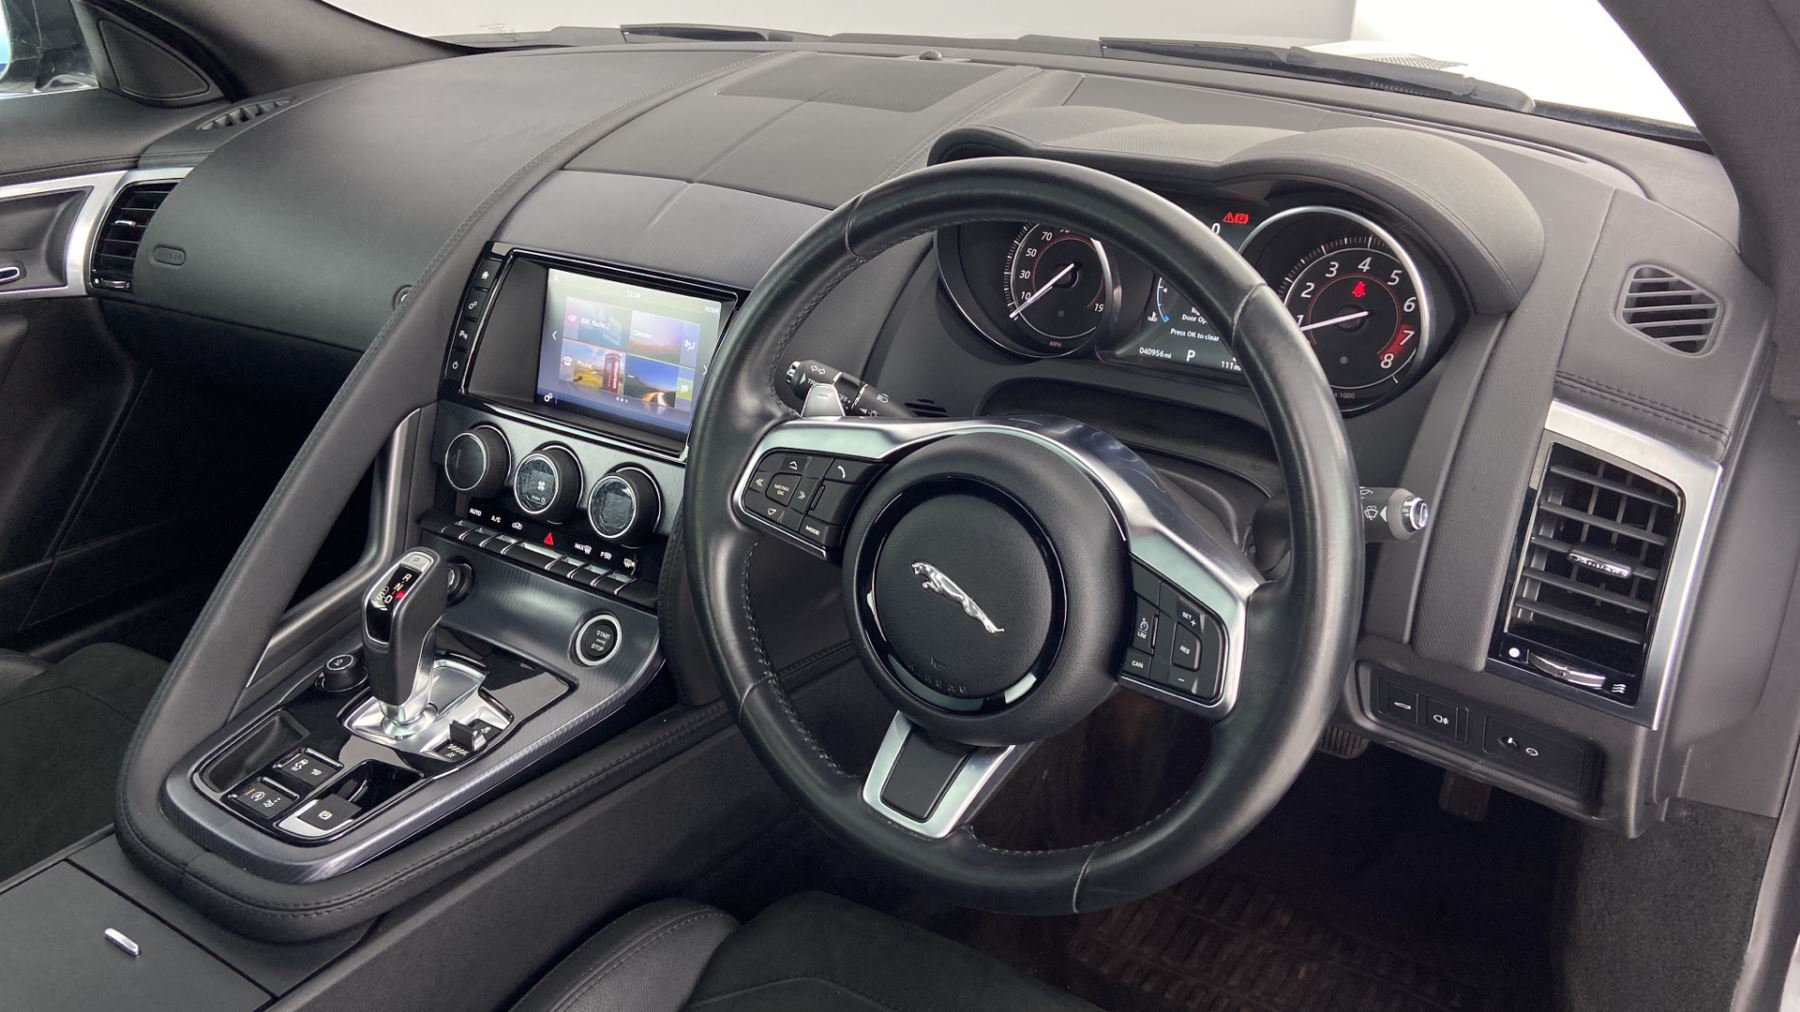 Jaguar F-TYPE 3.0 Supercharged V6 R-Dynamic with Panoramic Sunroof and Meridian Surround Sound image 3